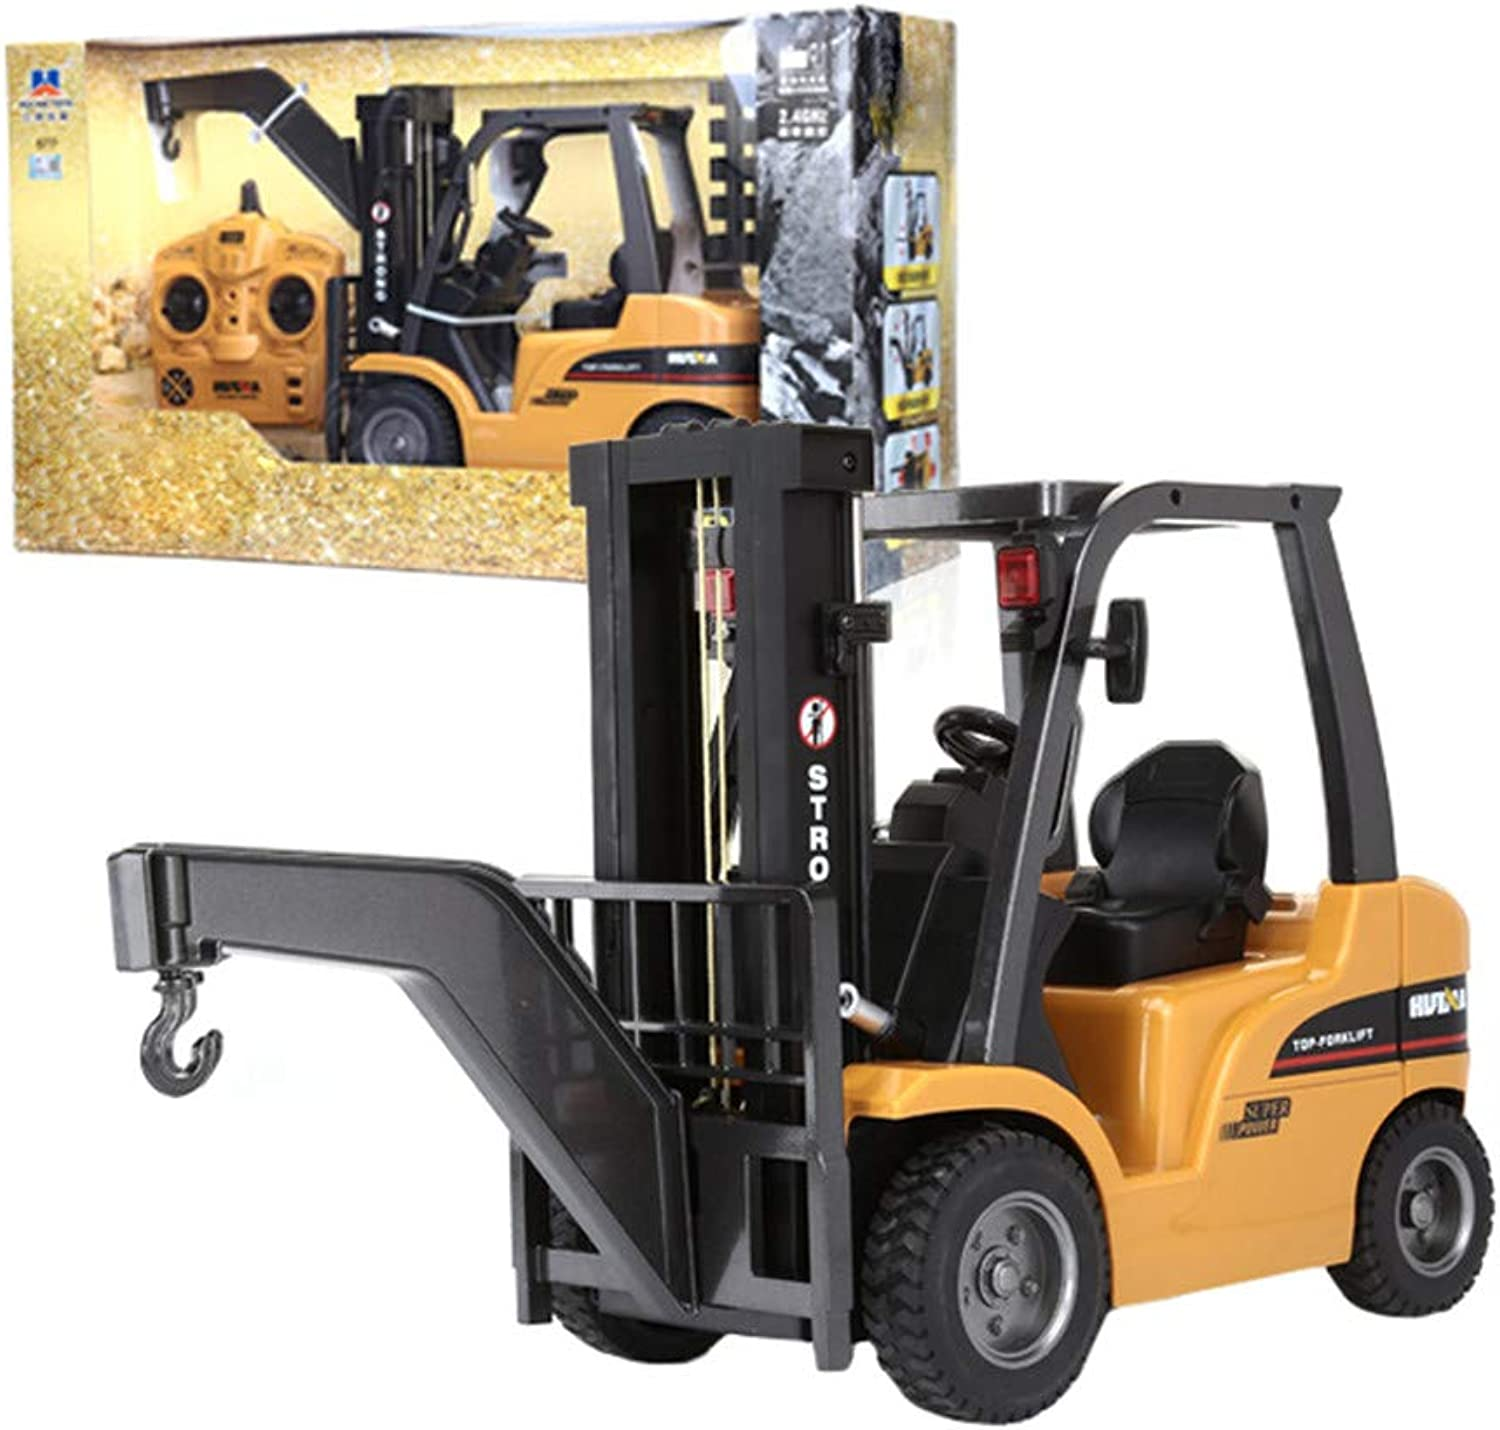 TOPQSC 1 10 Scale Remote Control Forklift 8 Channel Full divertimentoctional Professional RC Forklift High energiaosso Motors